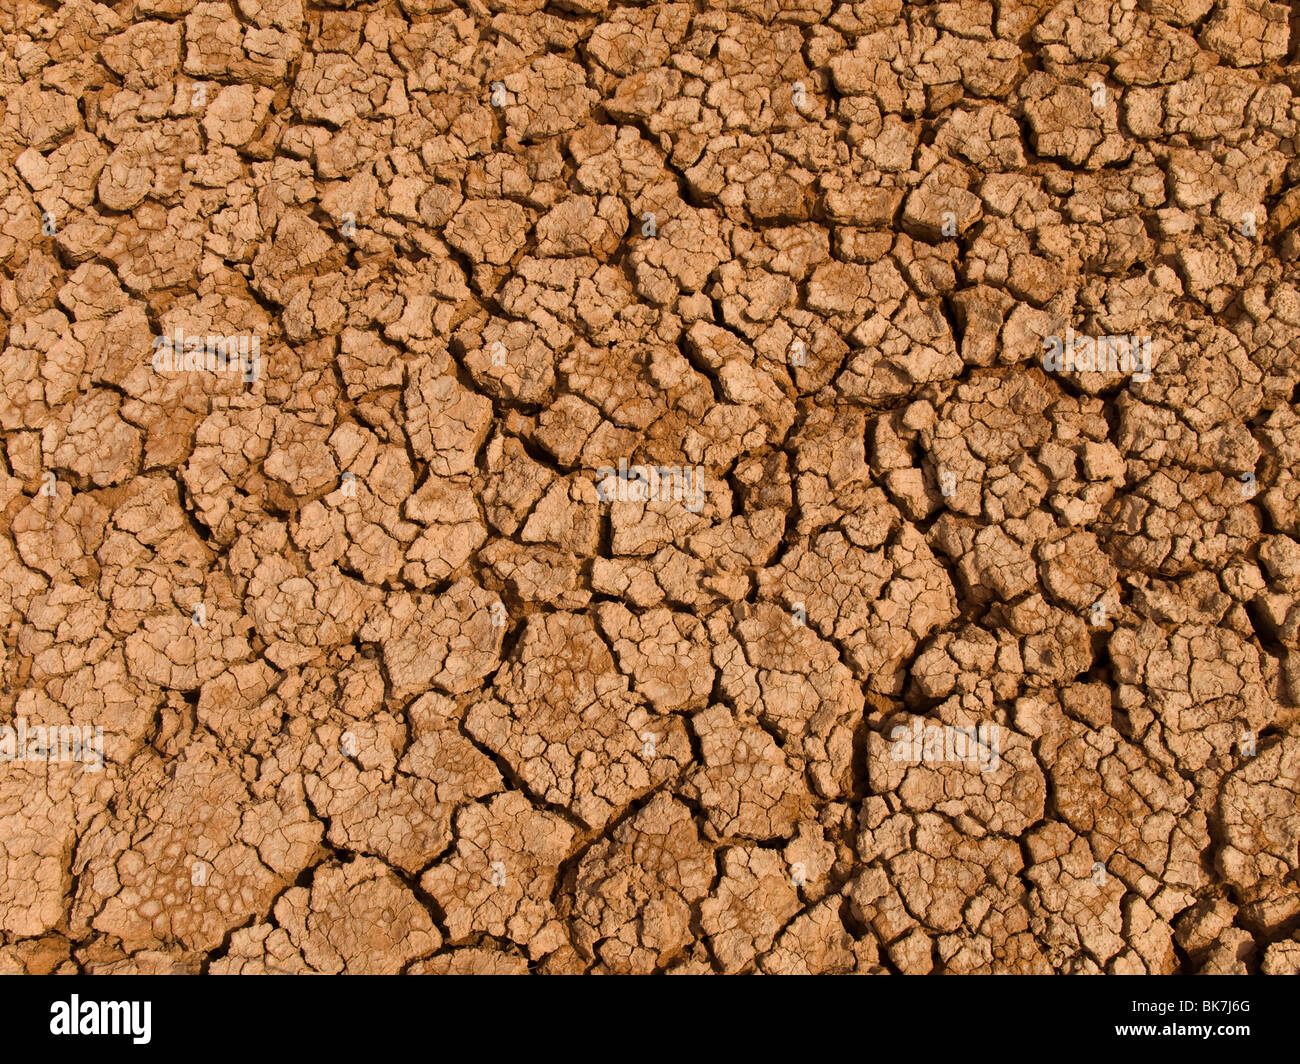 A baked earth soil after a long drought. - Stock Image